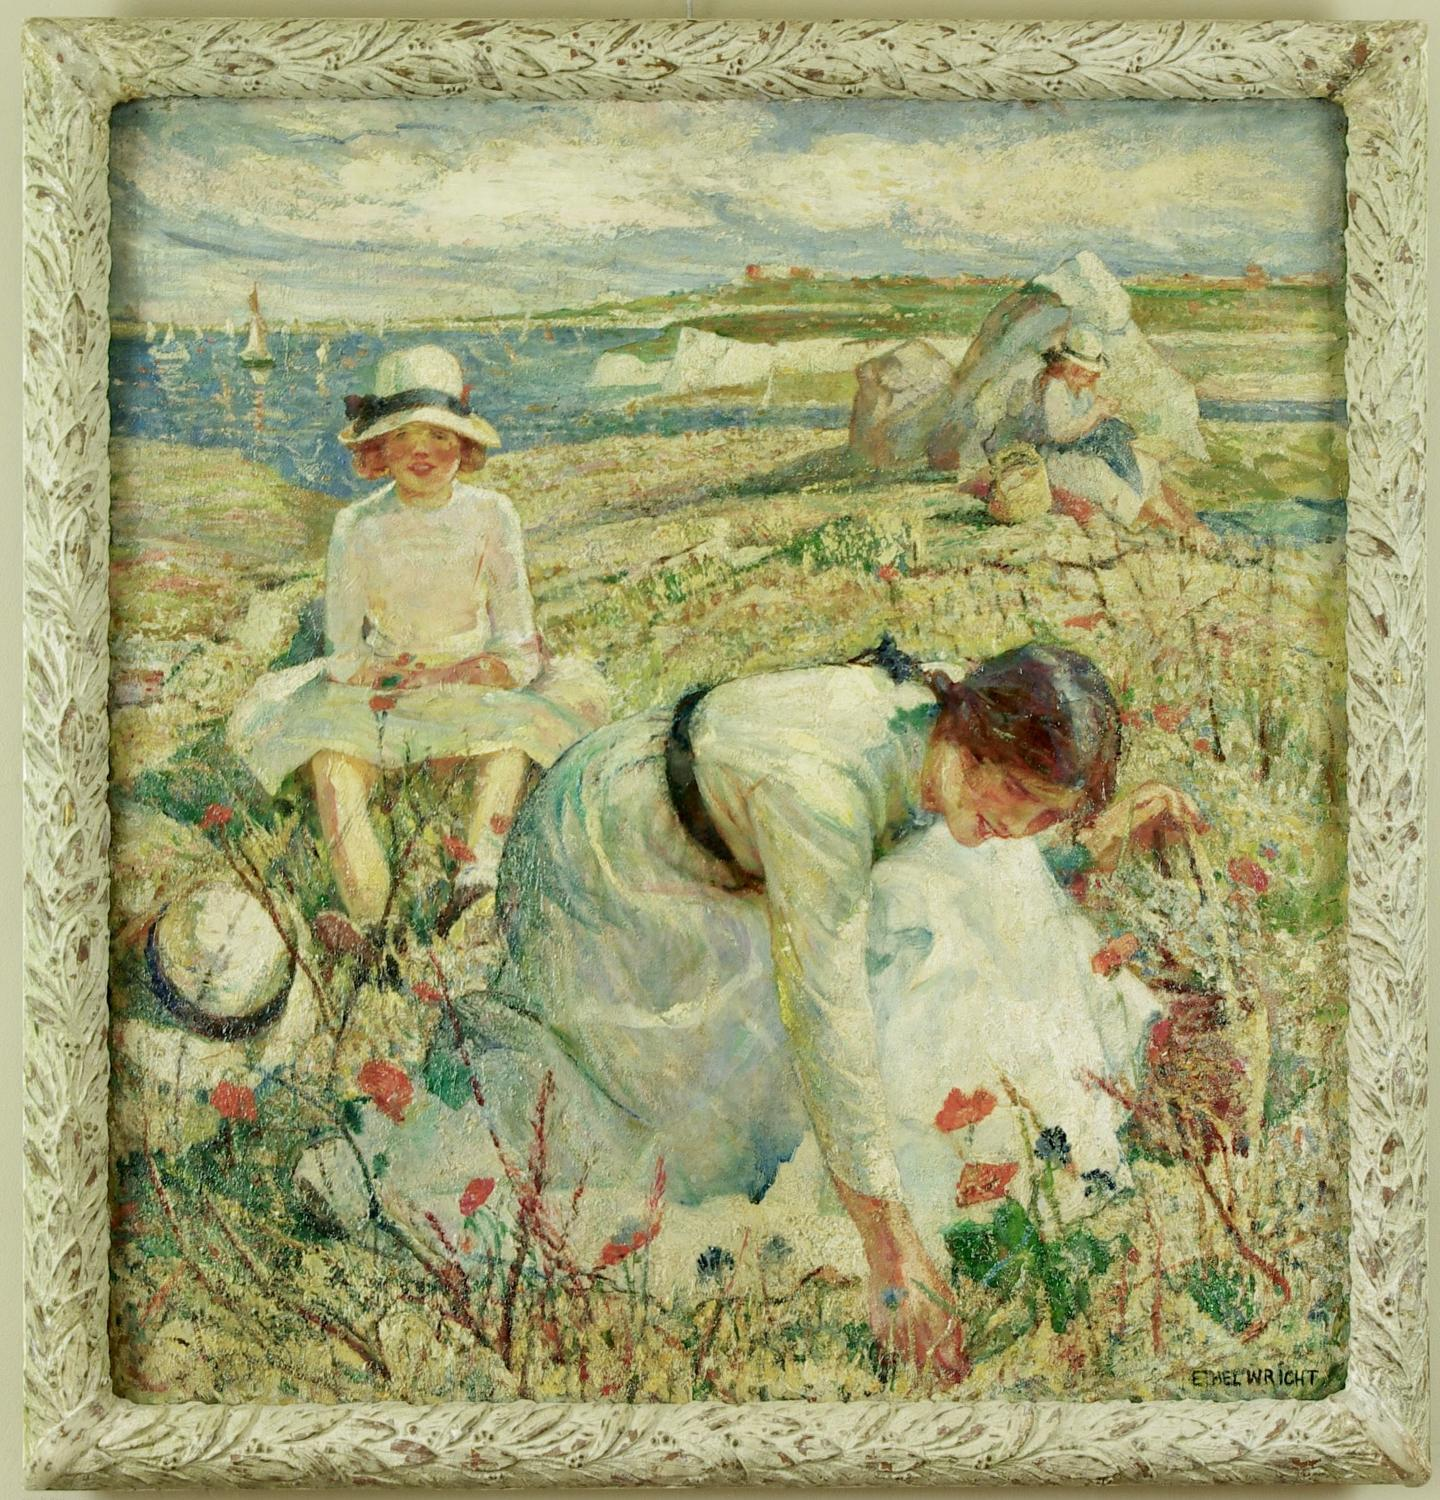 Miss Ethel Wright, Picking Flowers on a Cliff Top